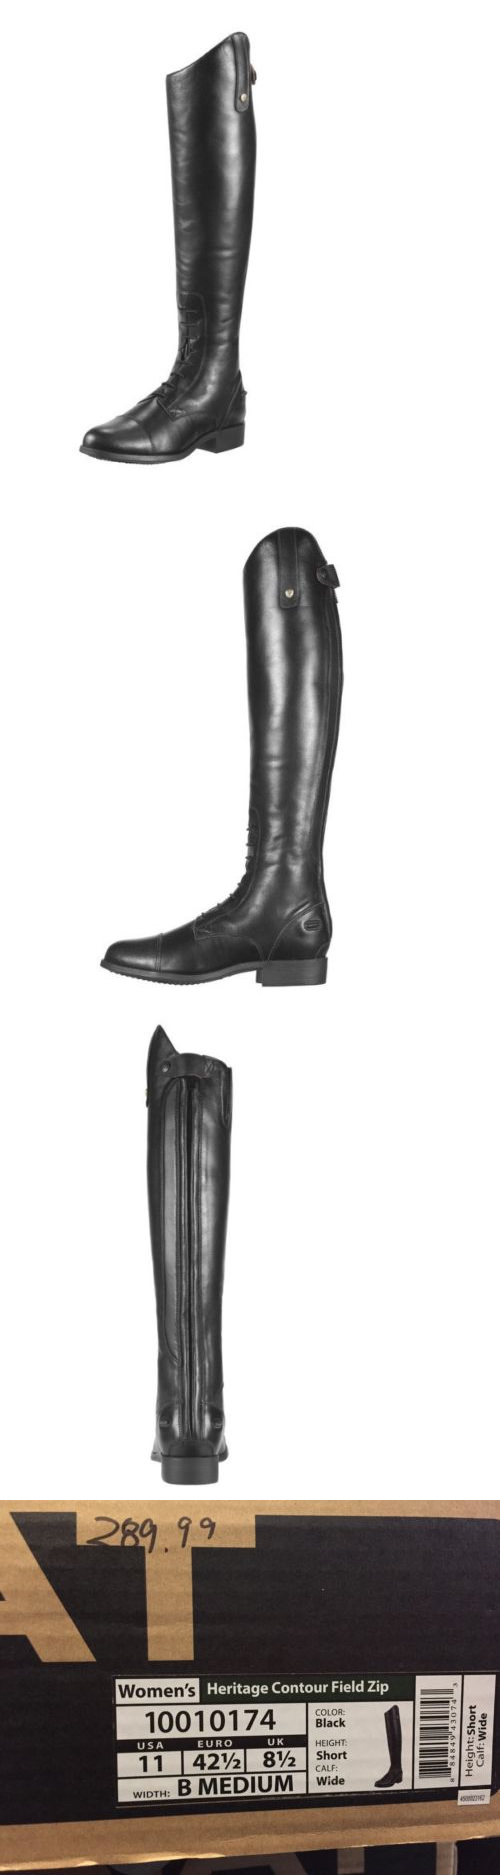 Other Riding Boots and Accs 46076: Ariat Heritage Contour Field ...